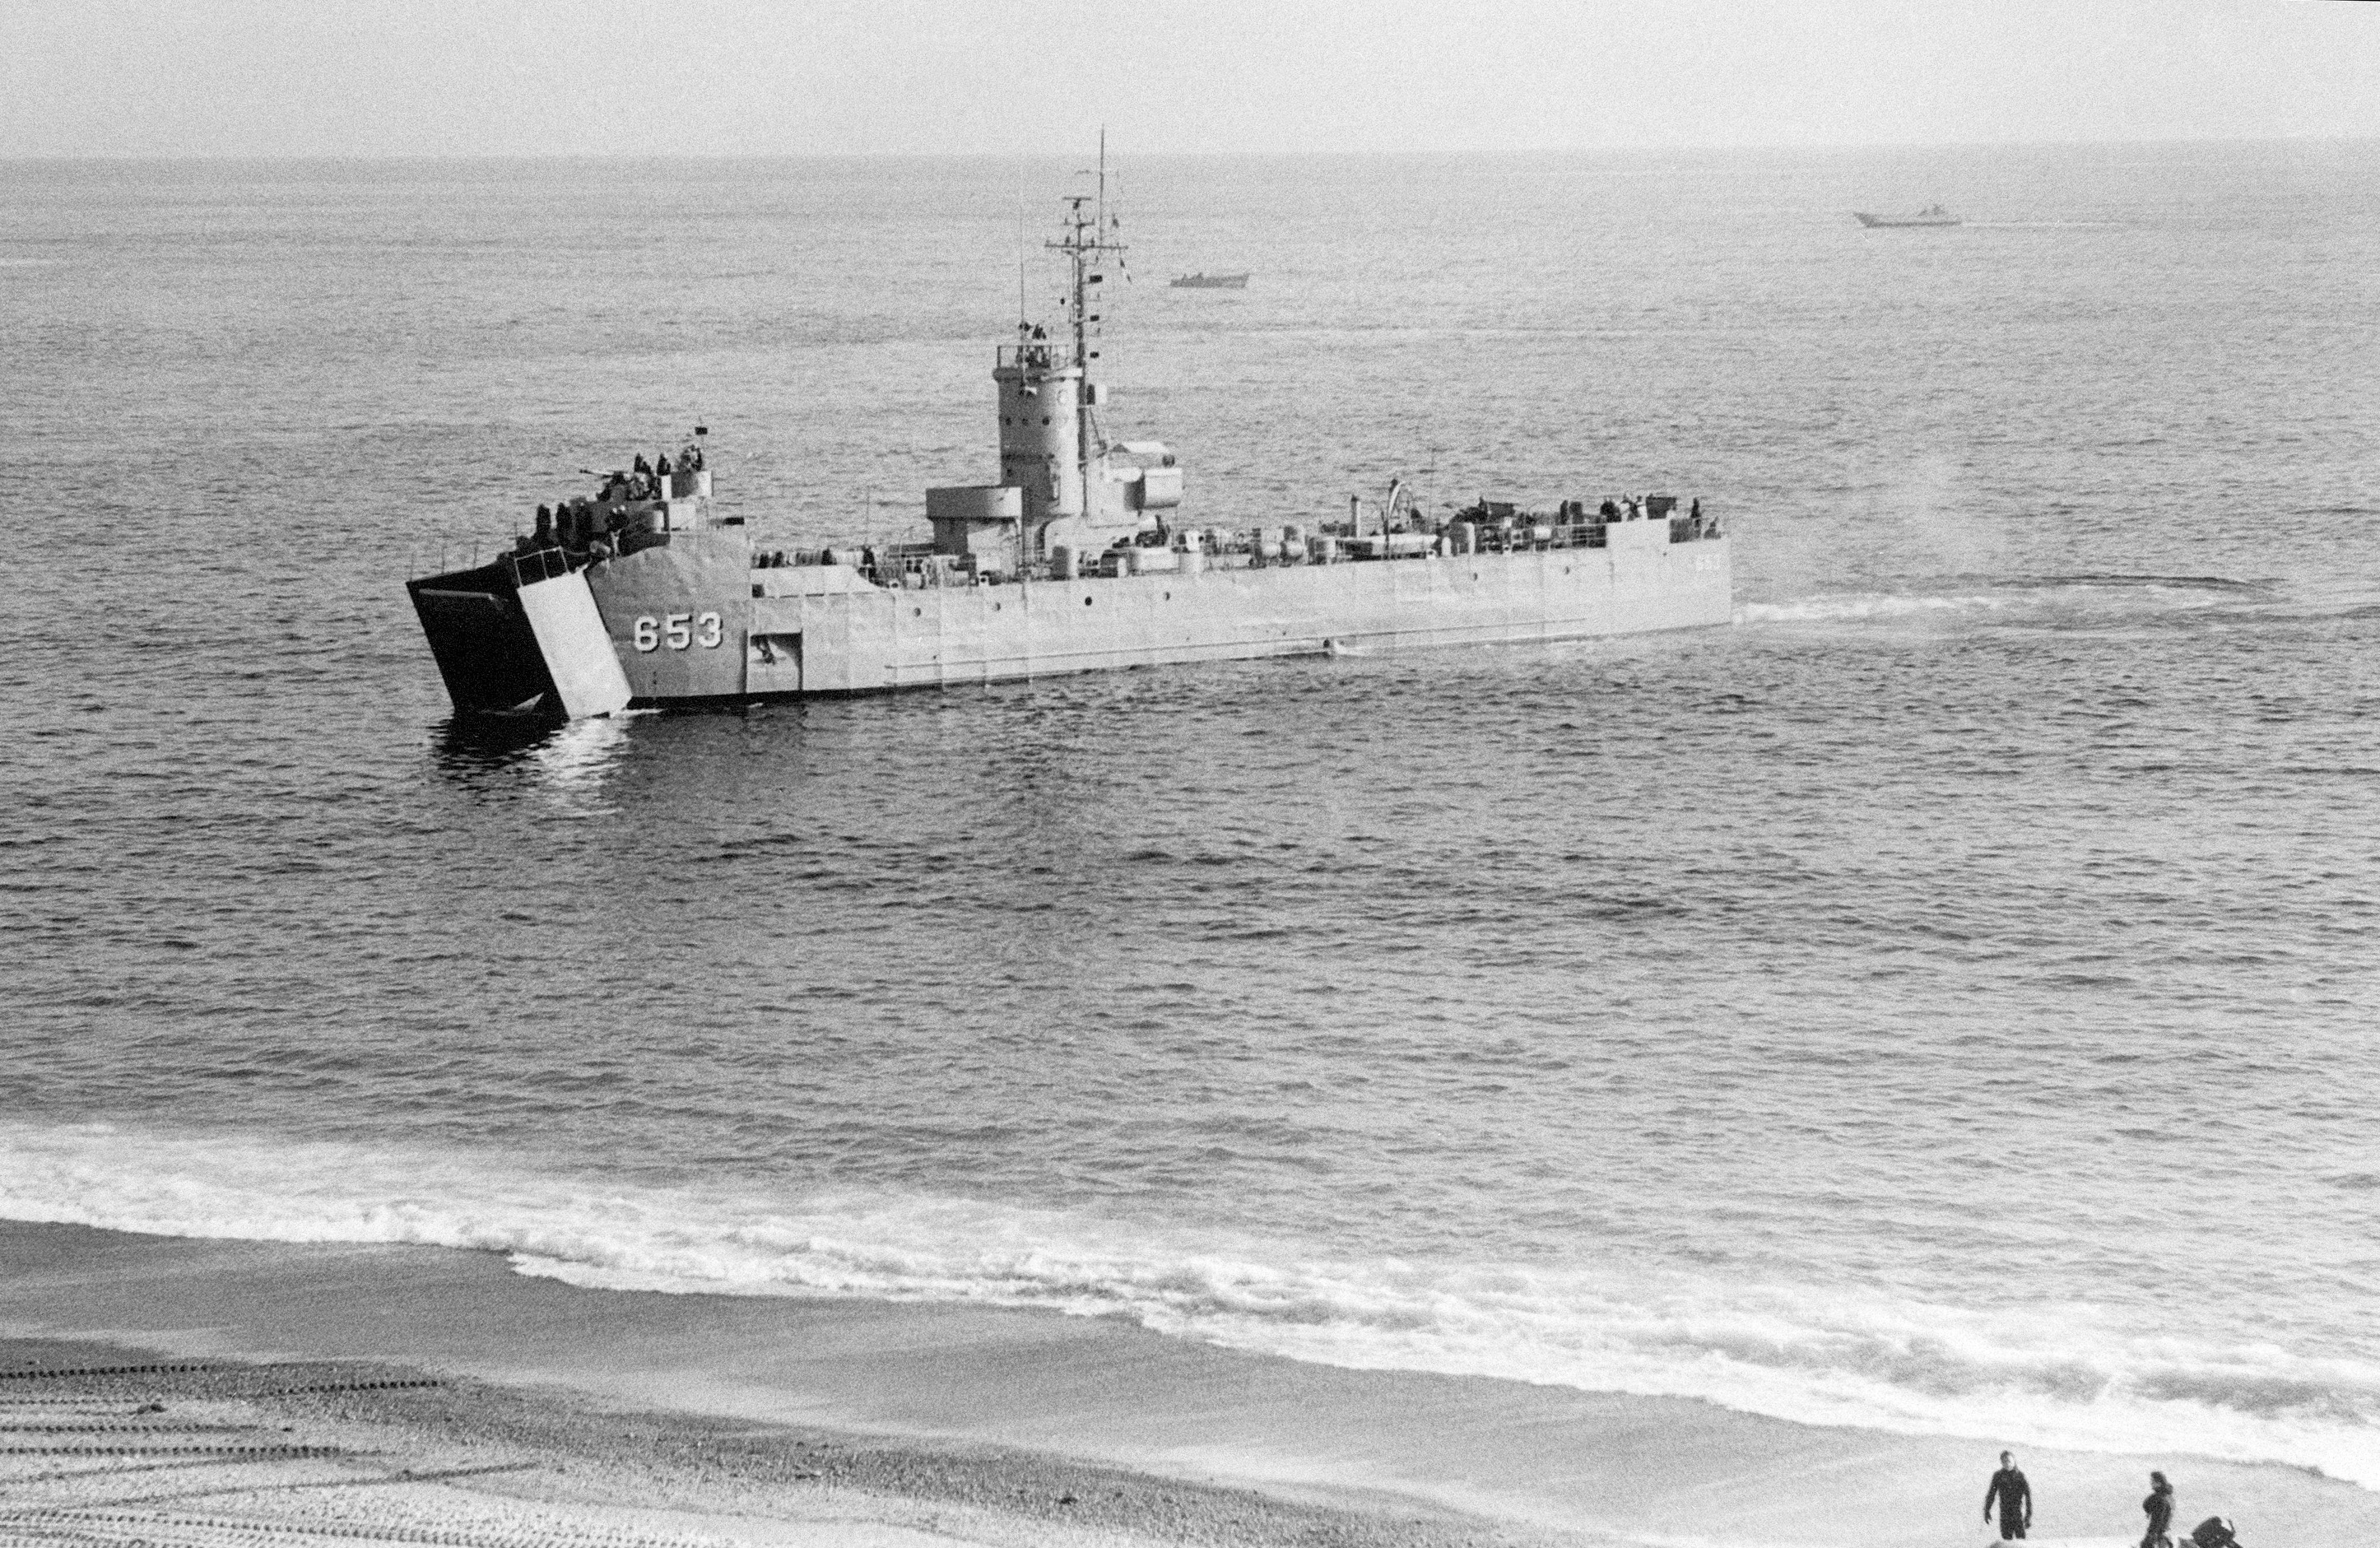 File:Republic of Korea ship Gadeok (LSM 653) approaches beach.jpeg ...lsm